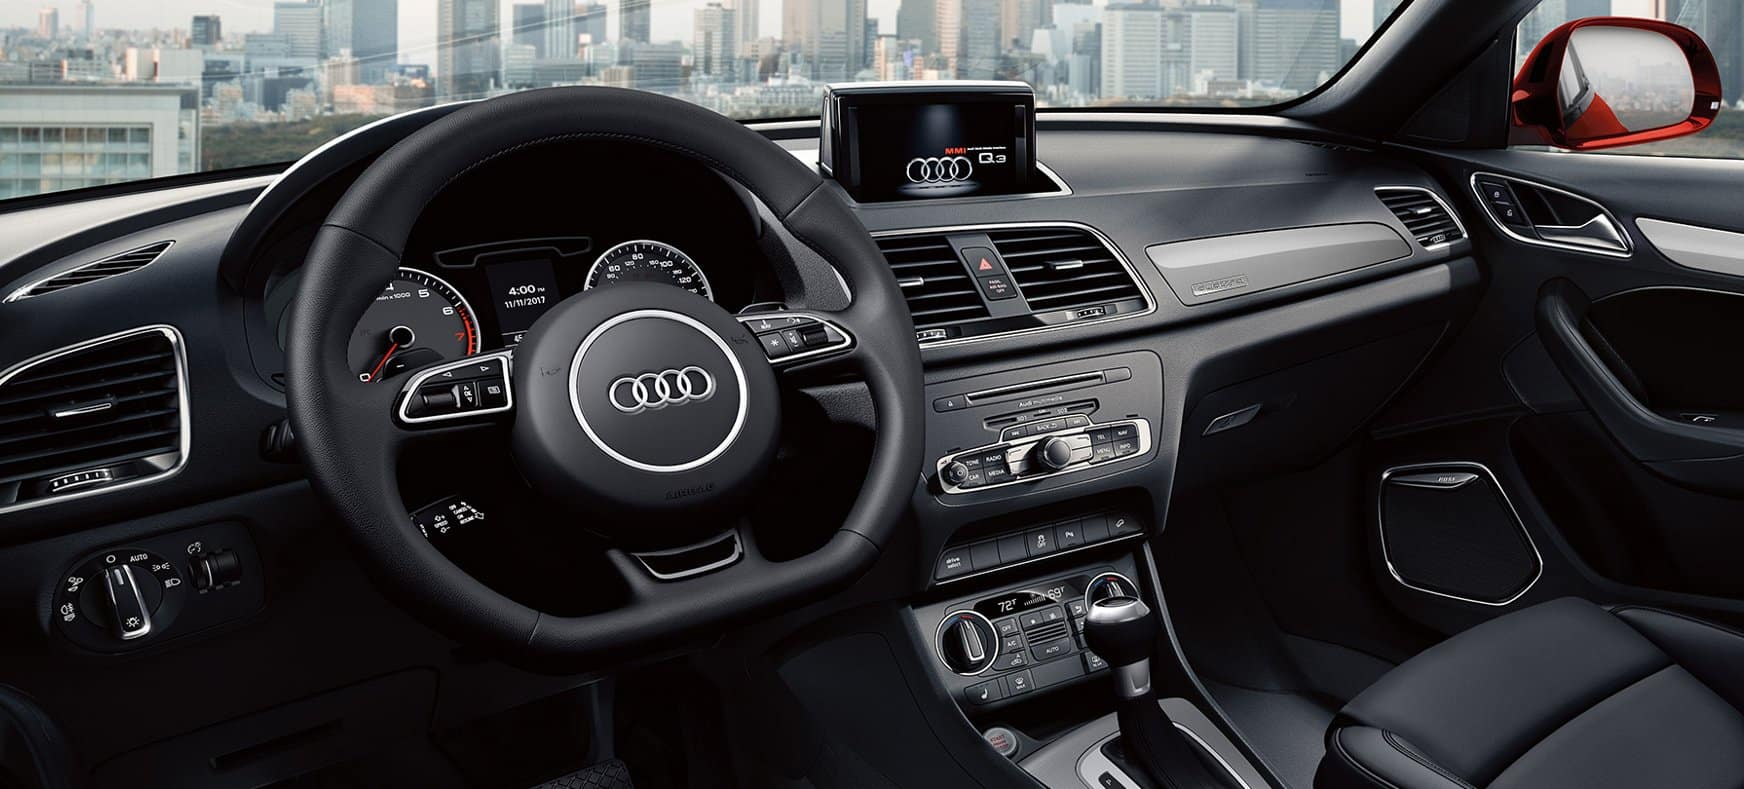 Audi Q3 2 0t Review A Luxury Crossover That S A Step Above